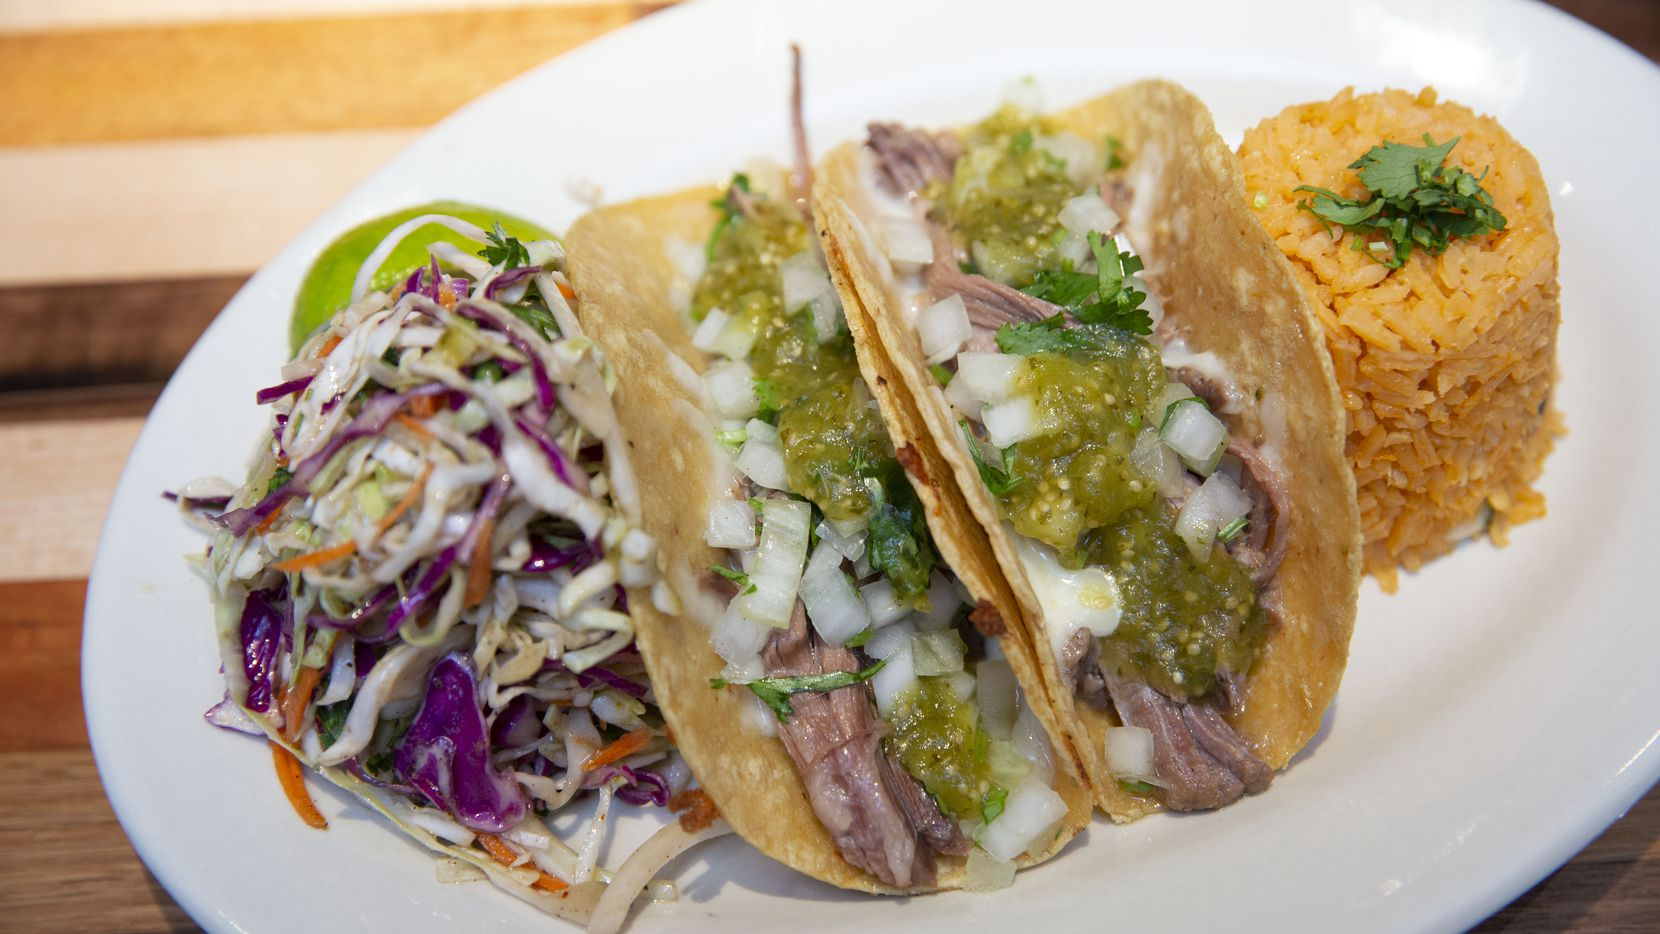 The brisket tacos at Mesero are one of the best sellers. A new Mesero is expected to open in Southlake in late 2021.